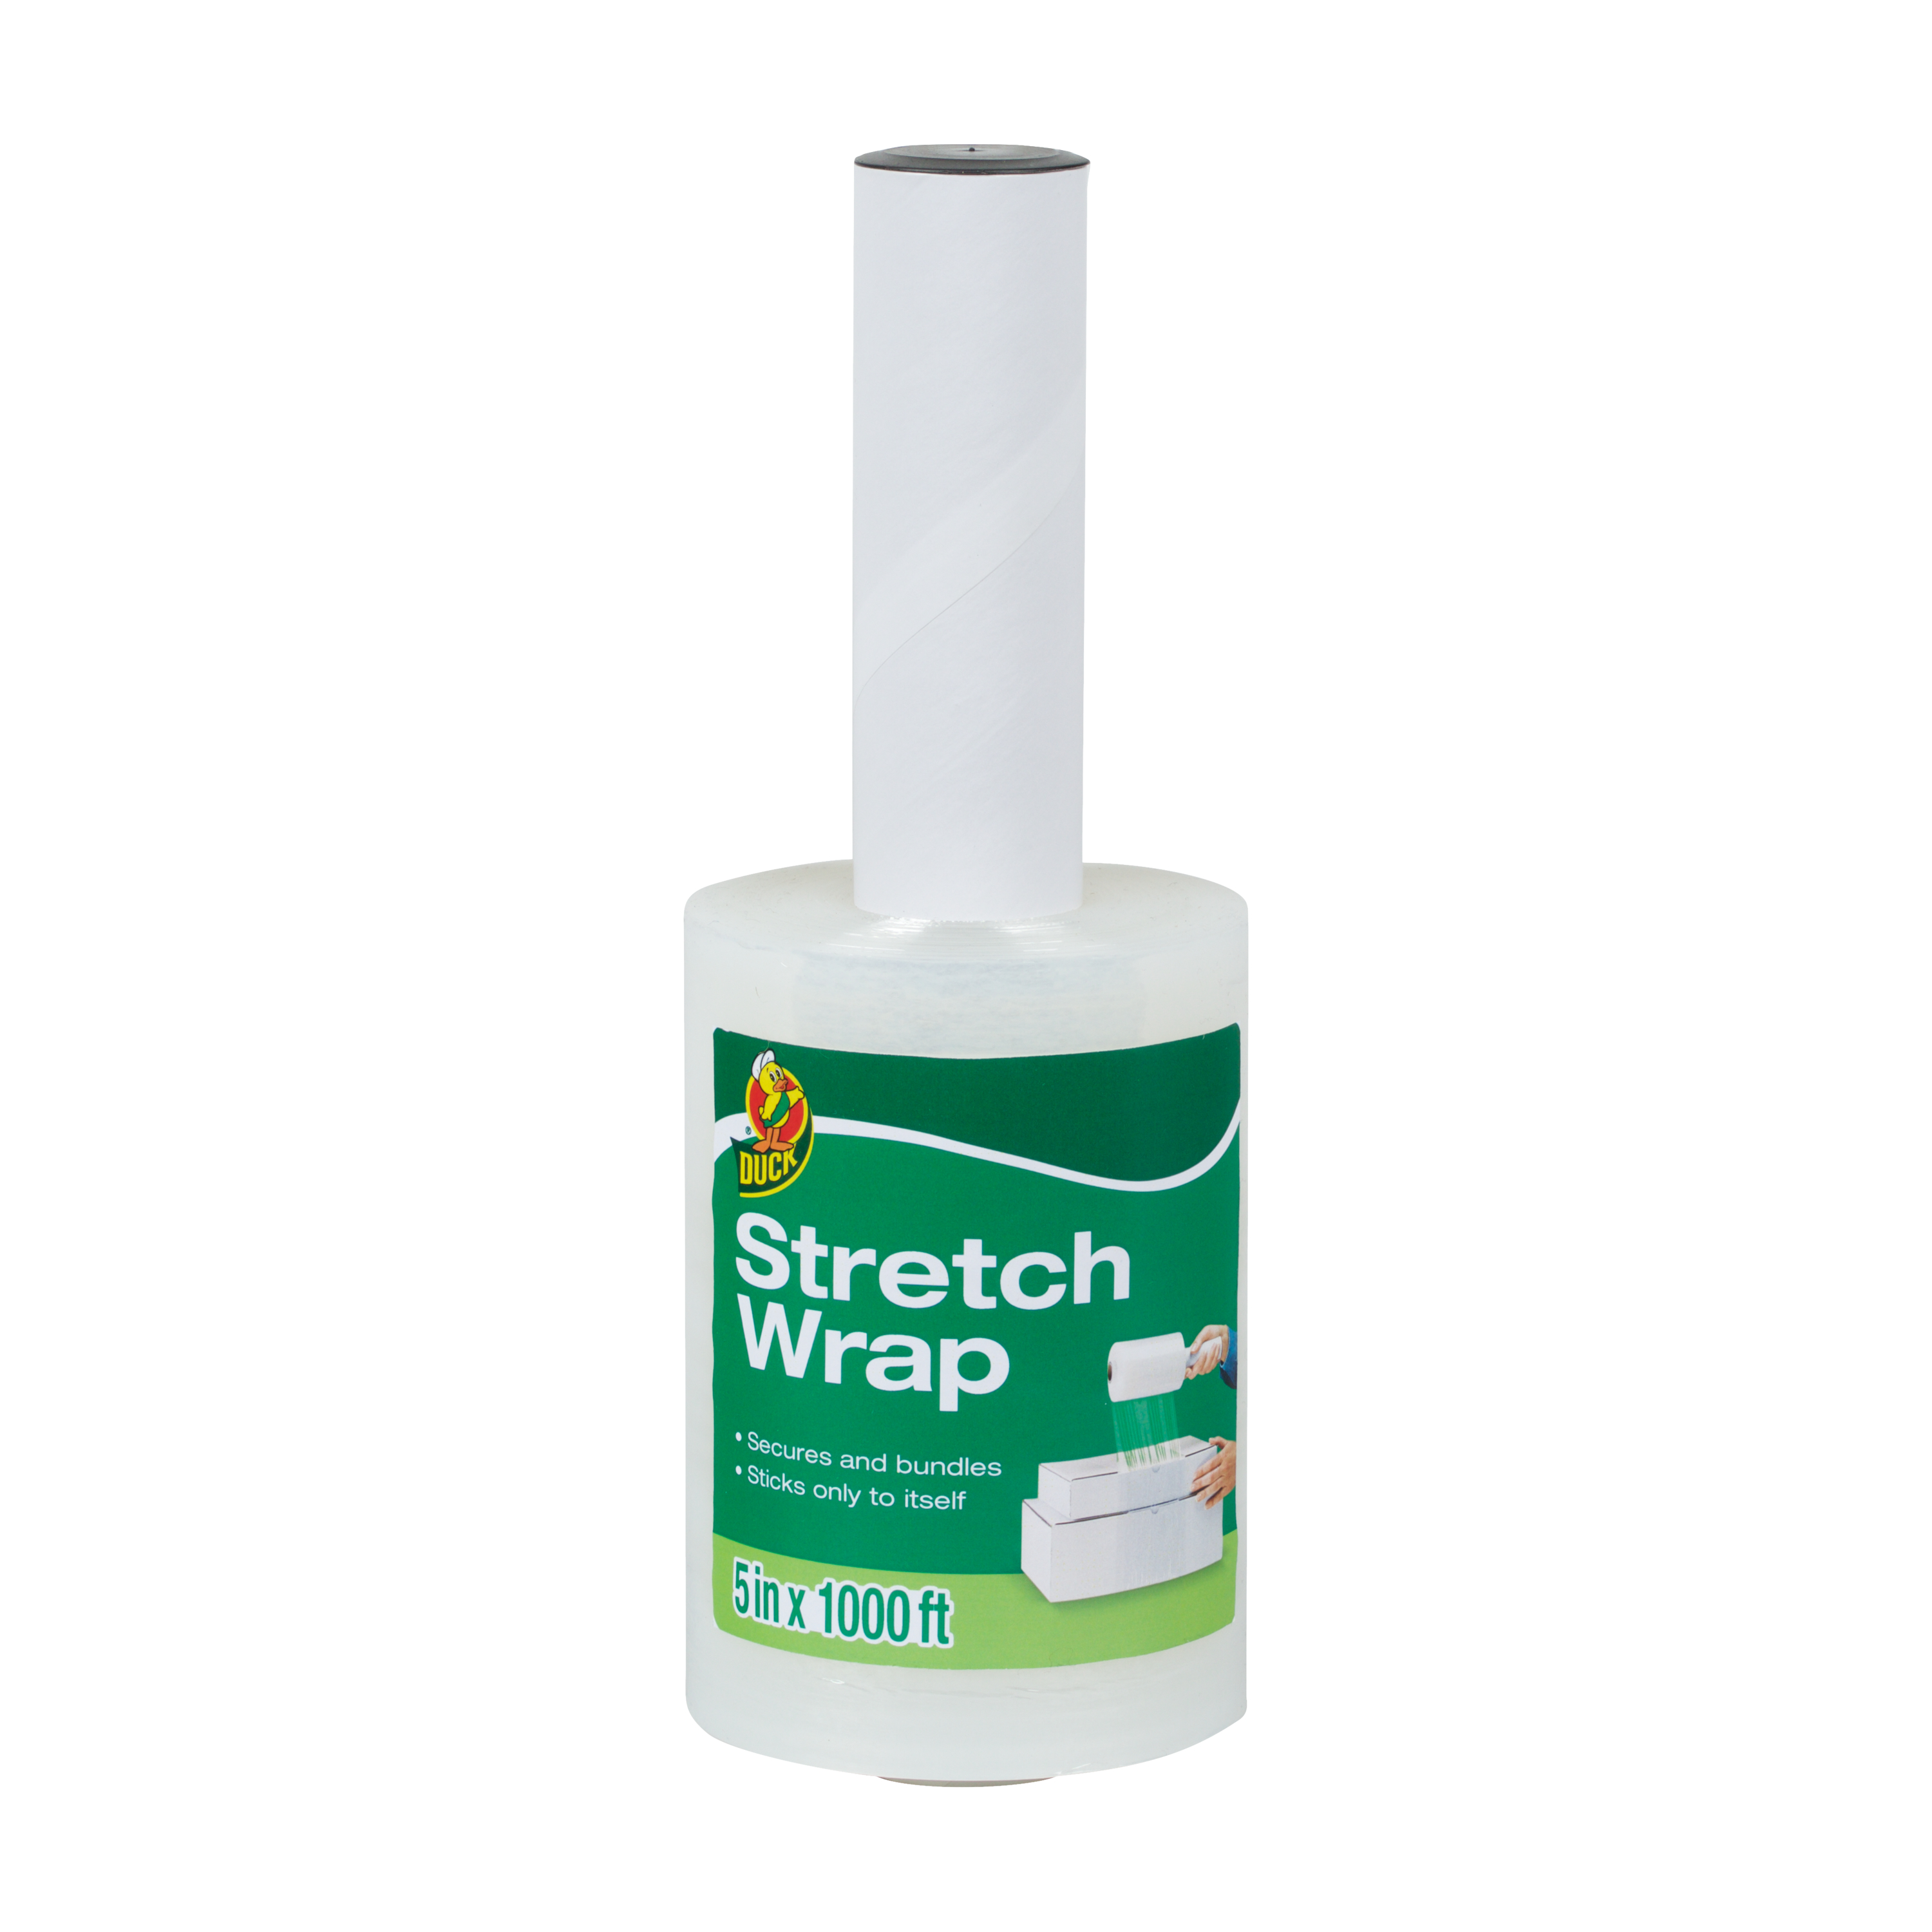 Duck Brand Stretch Wrap Film - Clear, 5 in. x 1,000 ft.